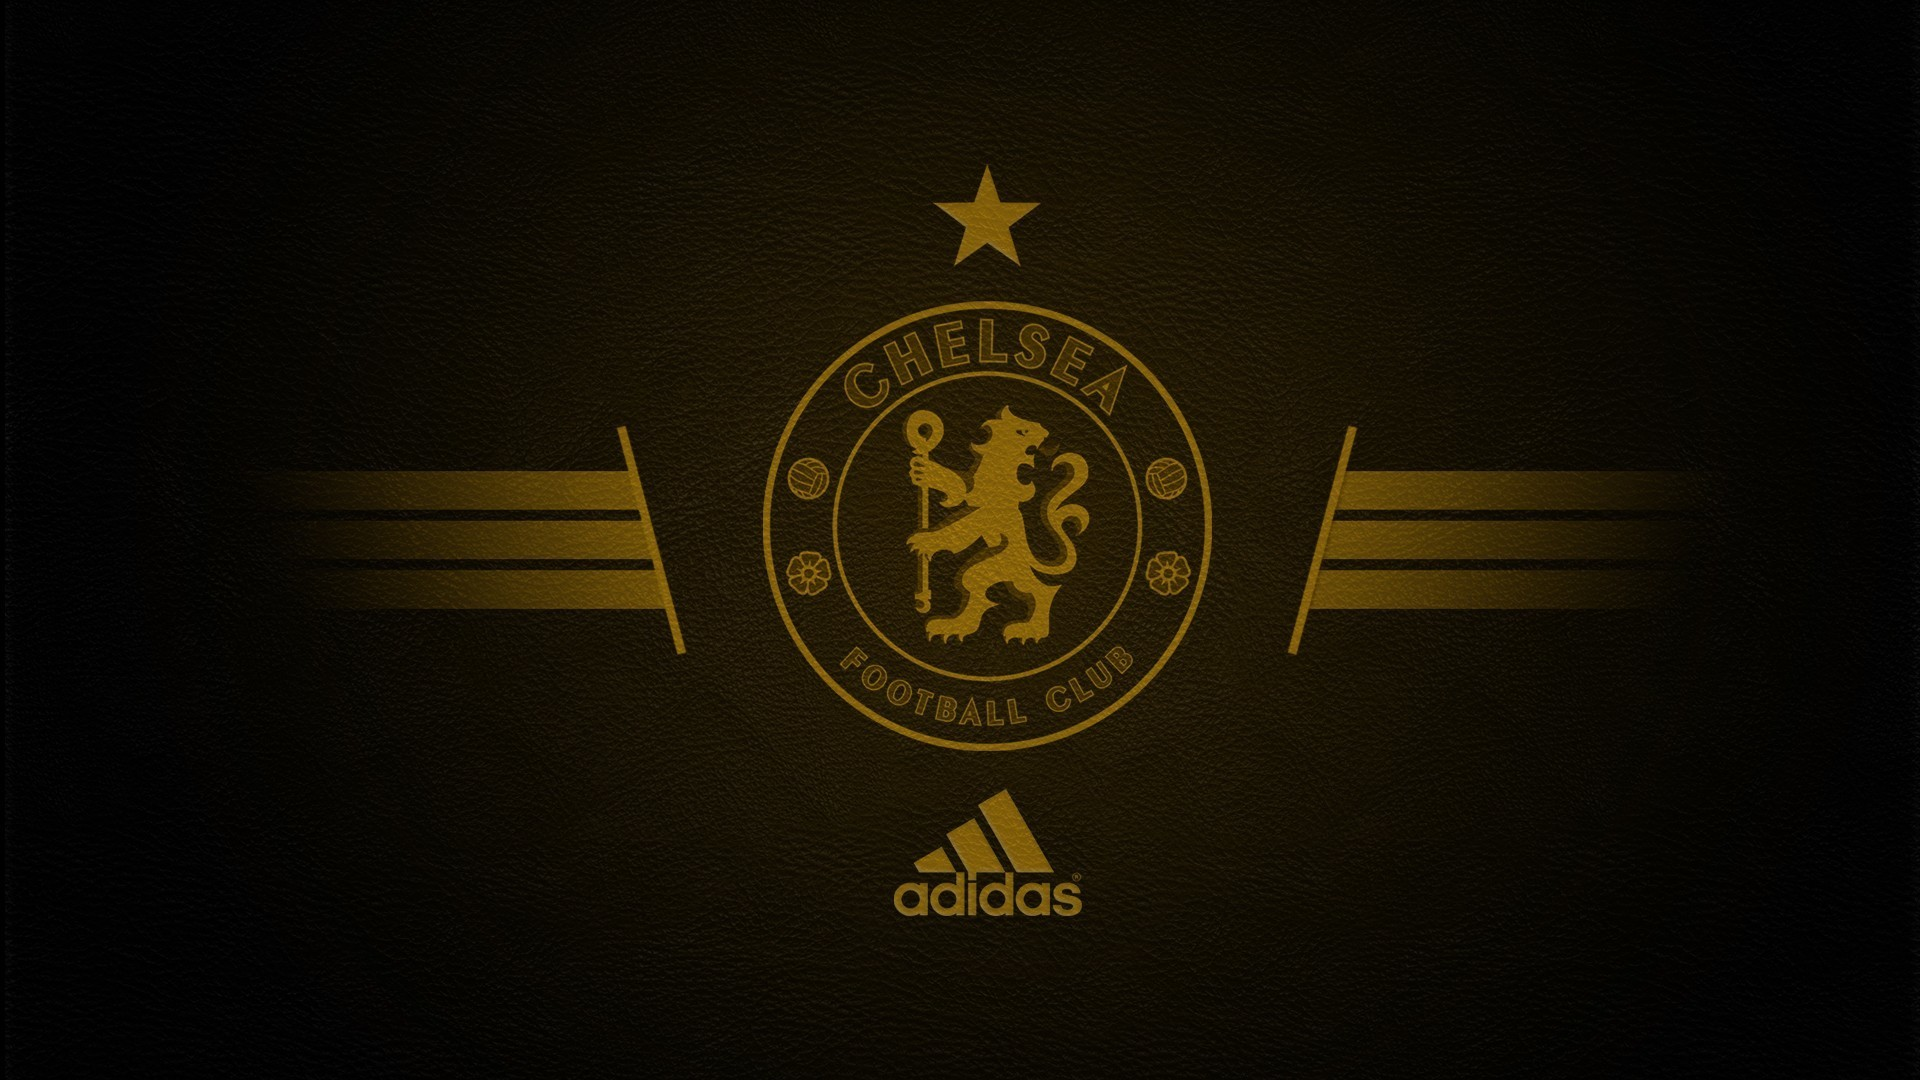 Mufc Iphone Wallpaper Chelsea Football Club Wallpapers 183 ① Wallpapertag